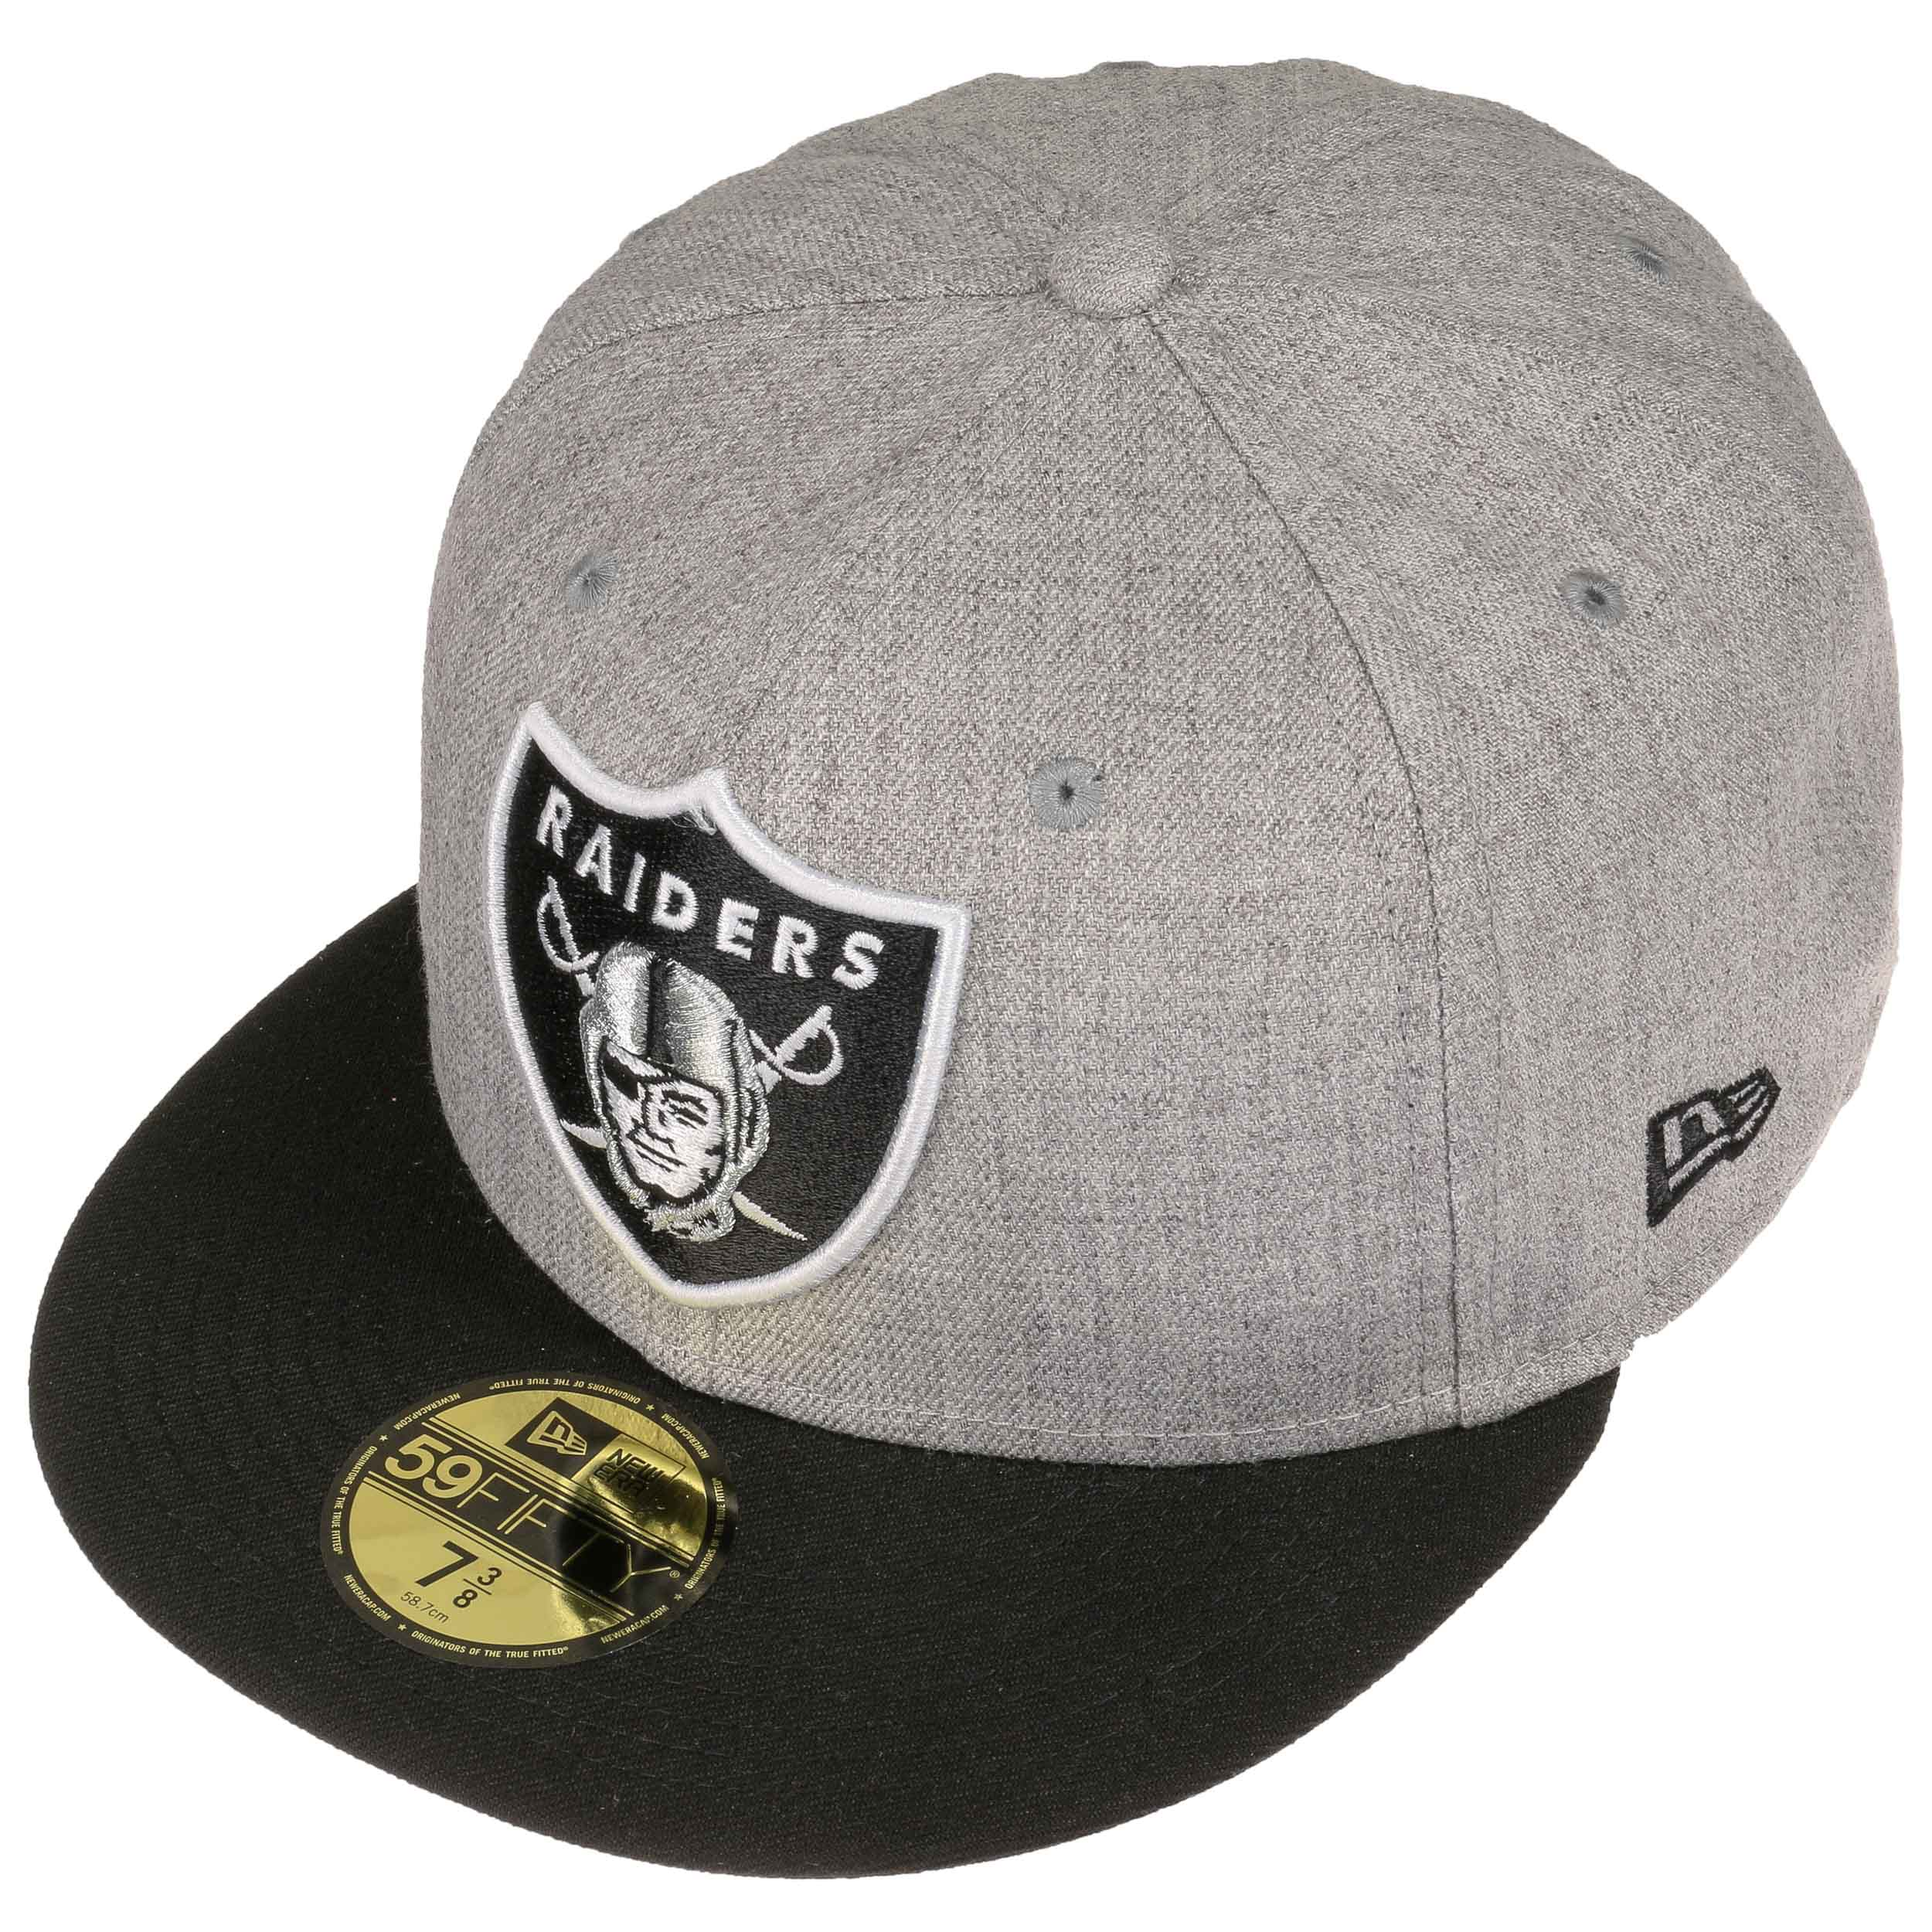 0cfd7a0c3f47c Gorra 59Fifty Heather Raiders by New Era - Gorras - sombreroshop.es